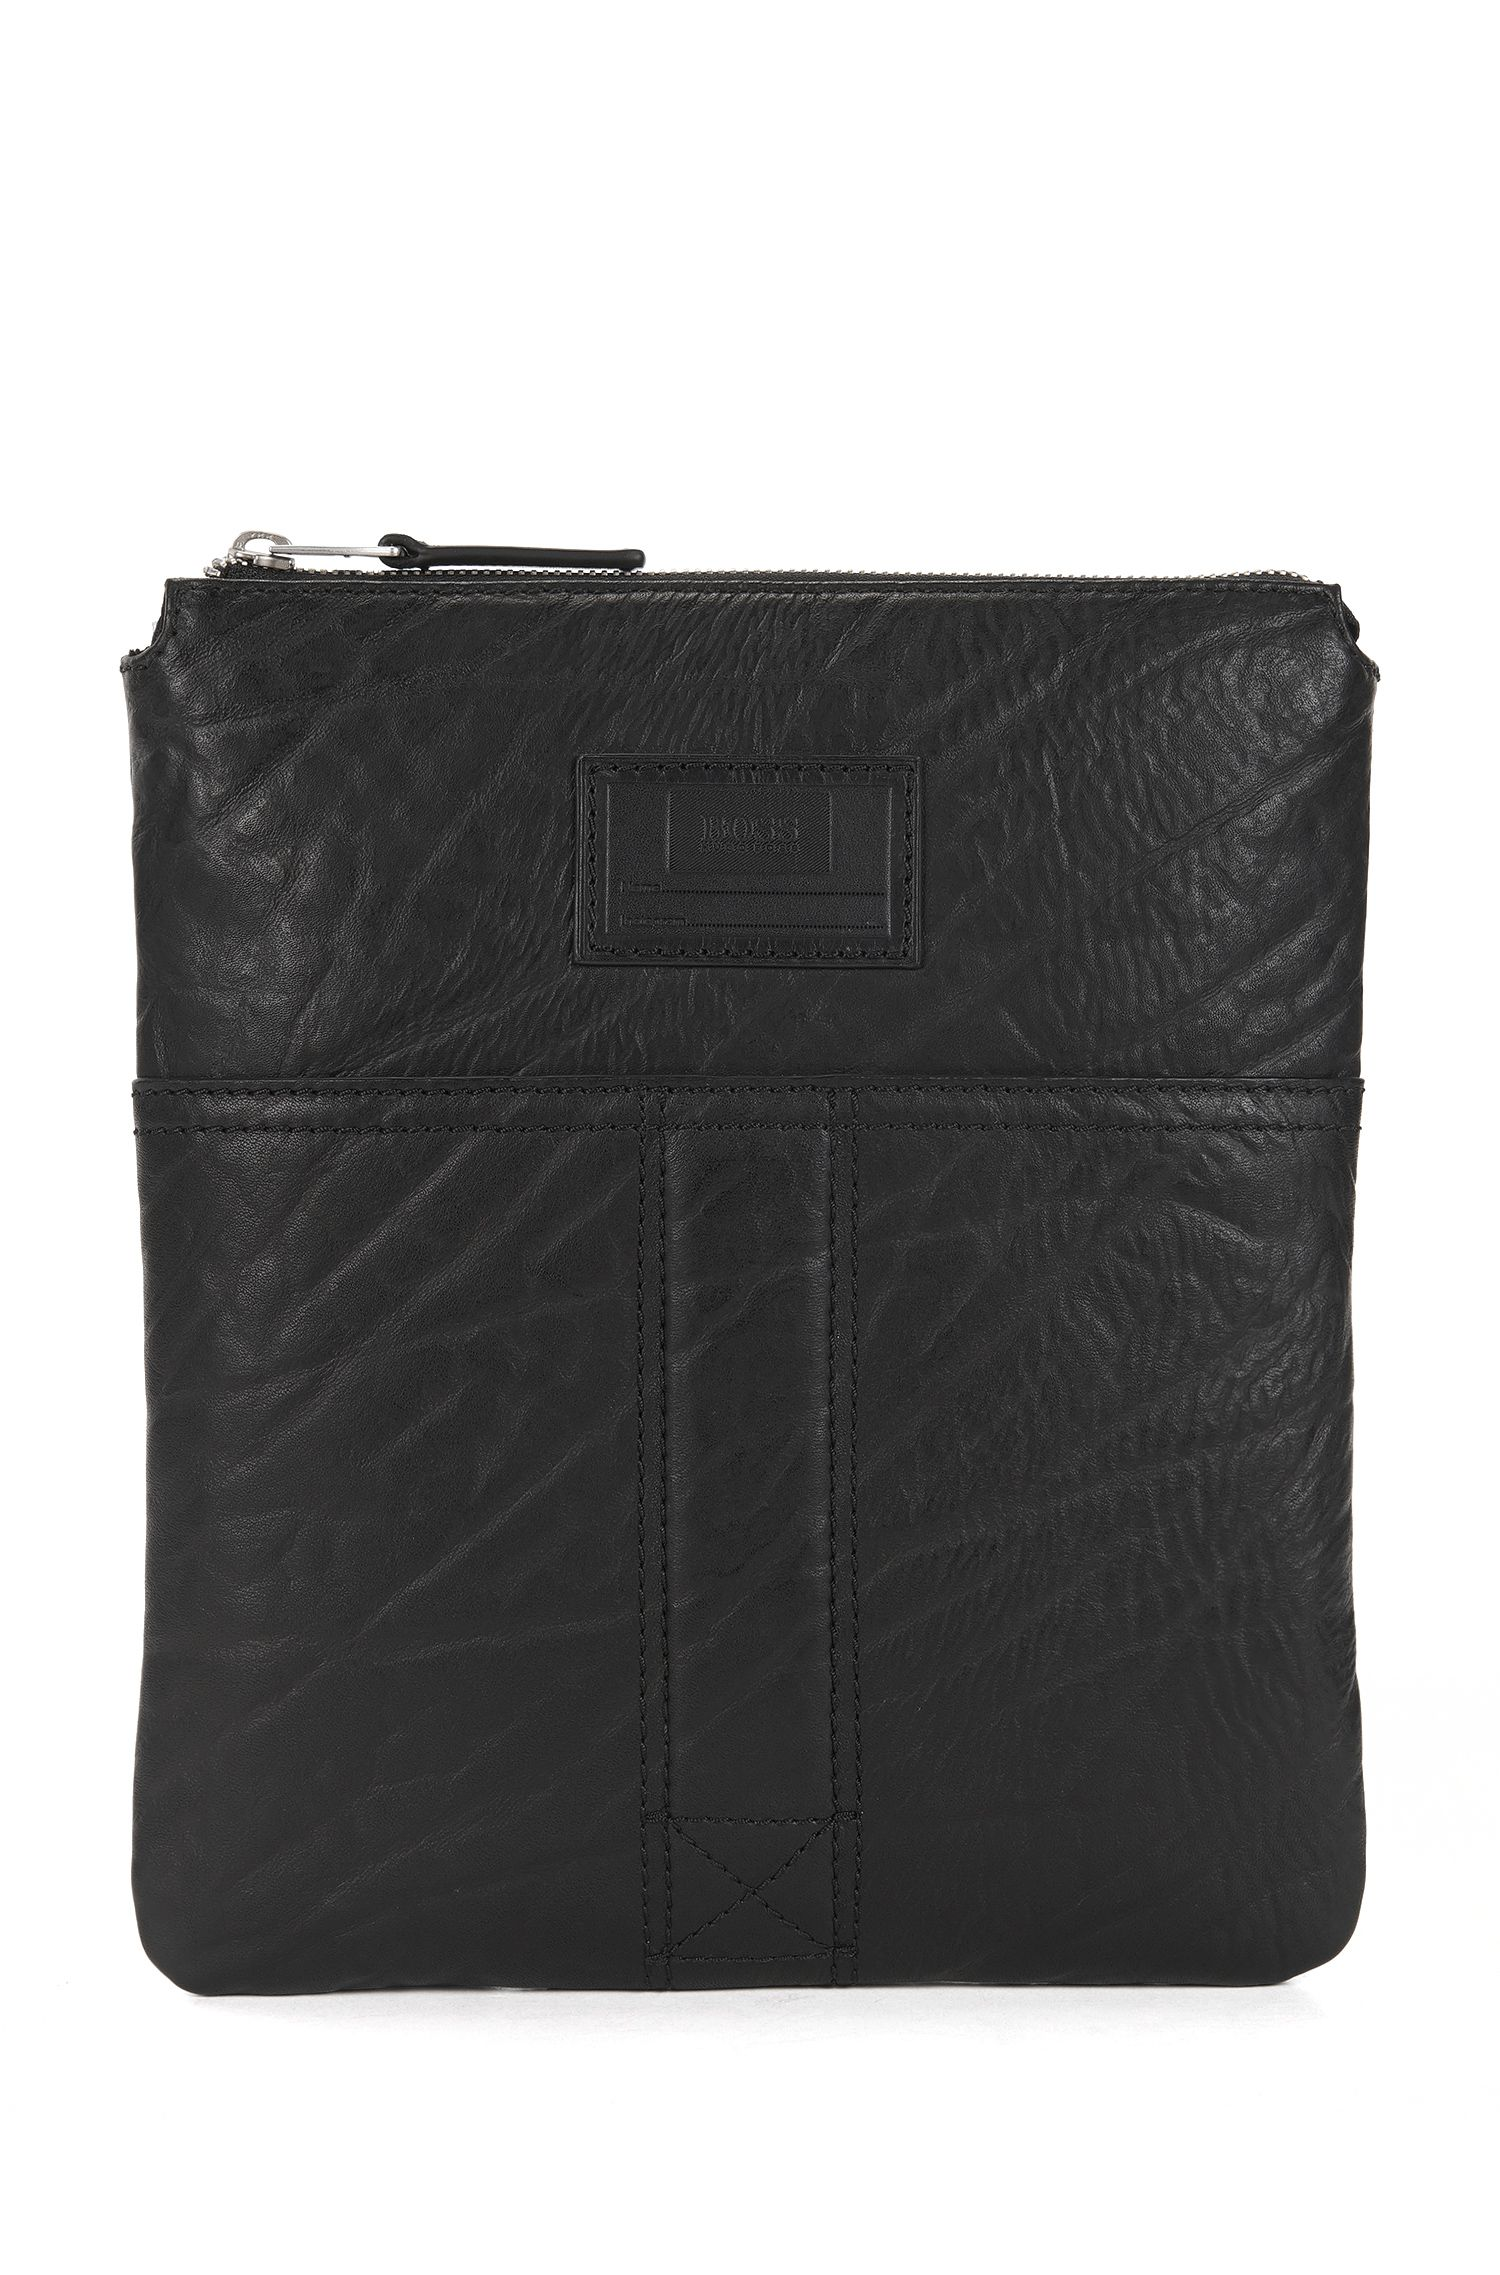 Zip-top envelope bag in grained leather